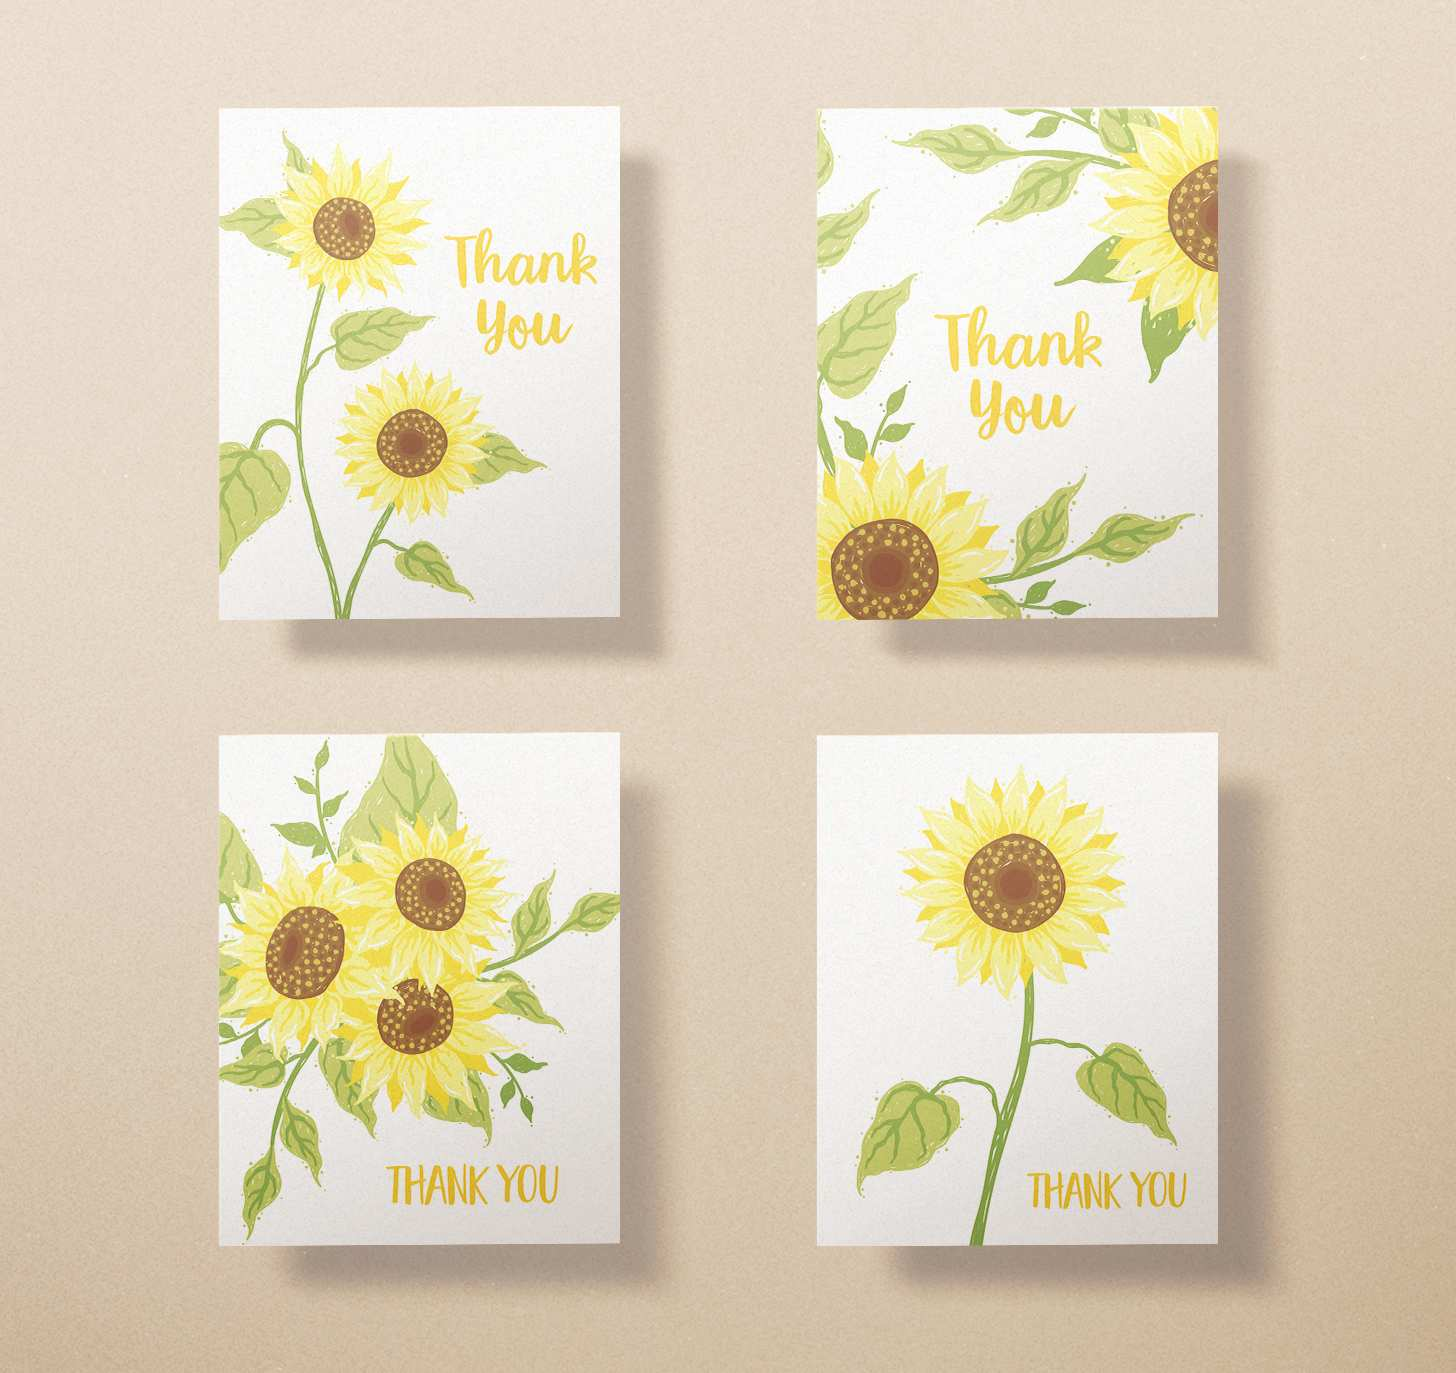 Four assorted yellow sunflower card designs